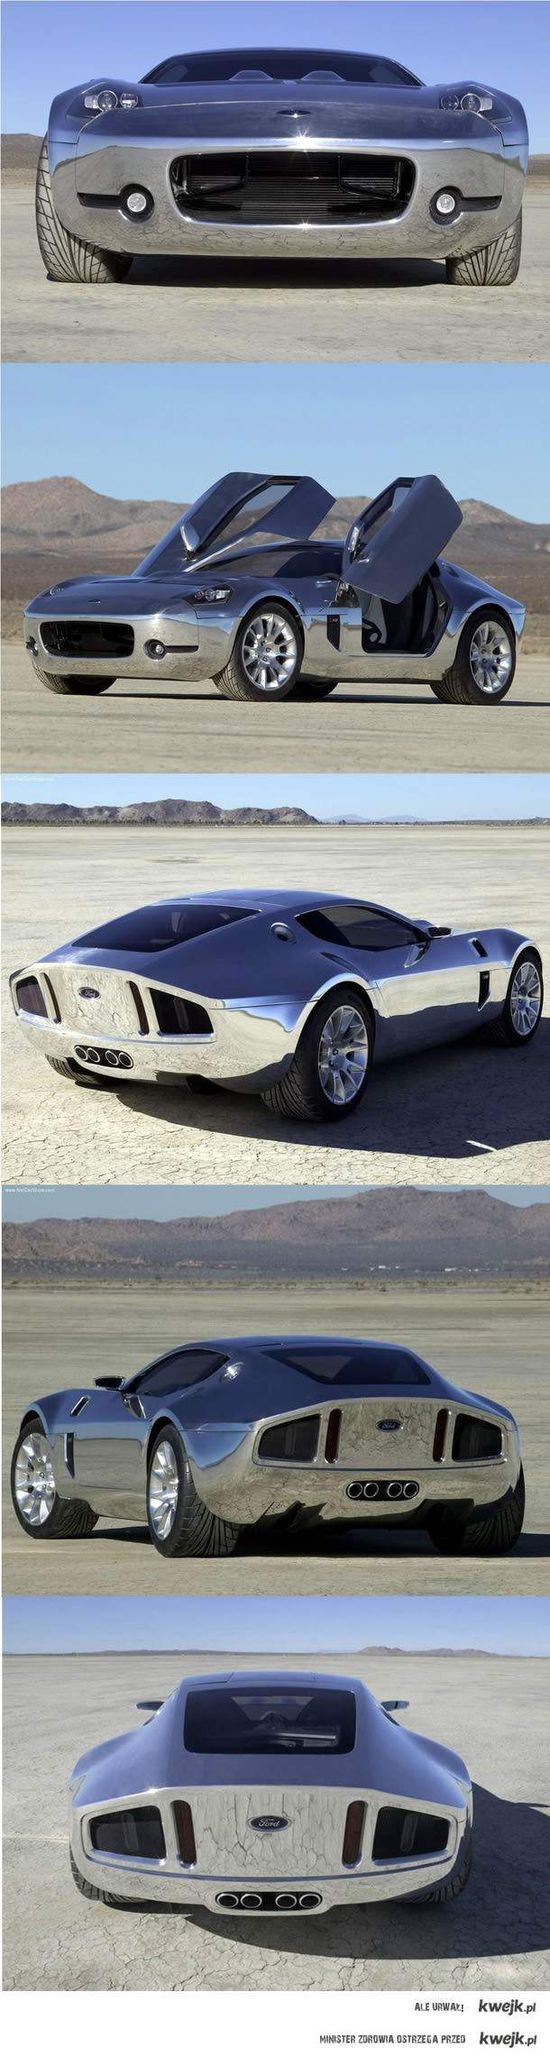 The Ford Shelby GR-1 was a 2.2 million dollar concept car that was created by the Ford Motor Company. It was first introduced at the 2005 North American International Auto Show. The GR-1 was created with the inspiration from the Shelby brand. It was inspired by and bears resemblance to the Shelby Daytona.